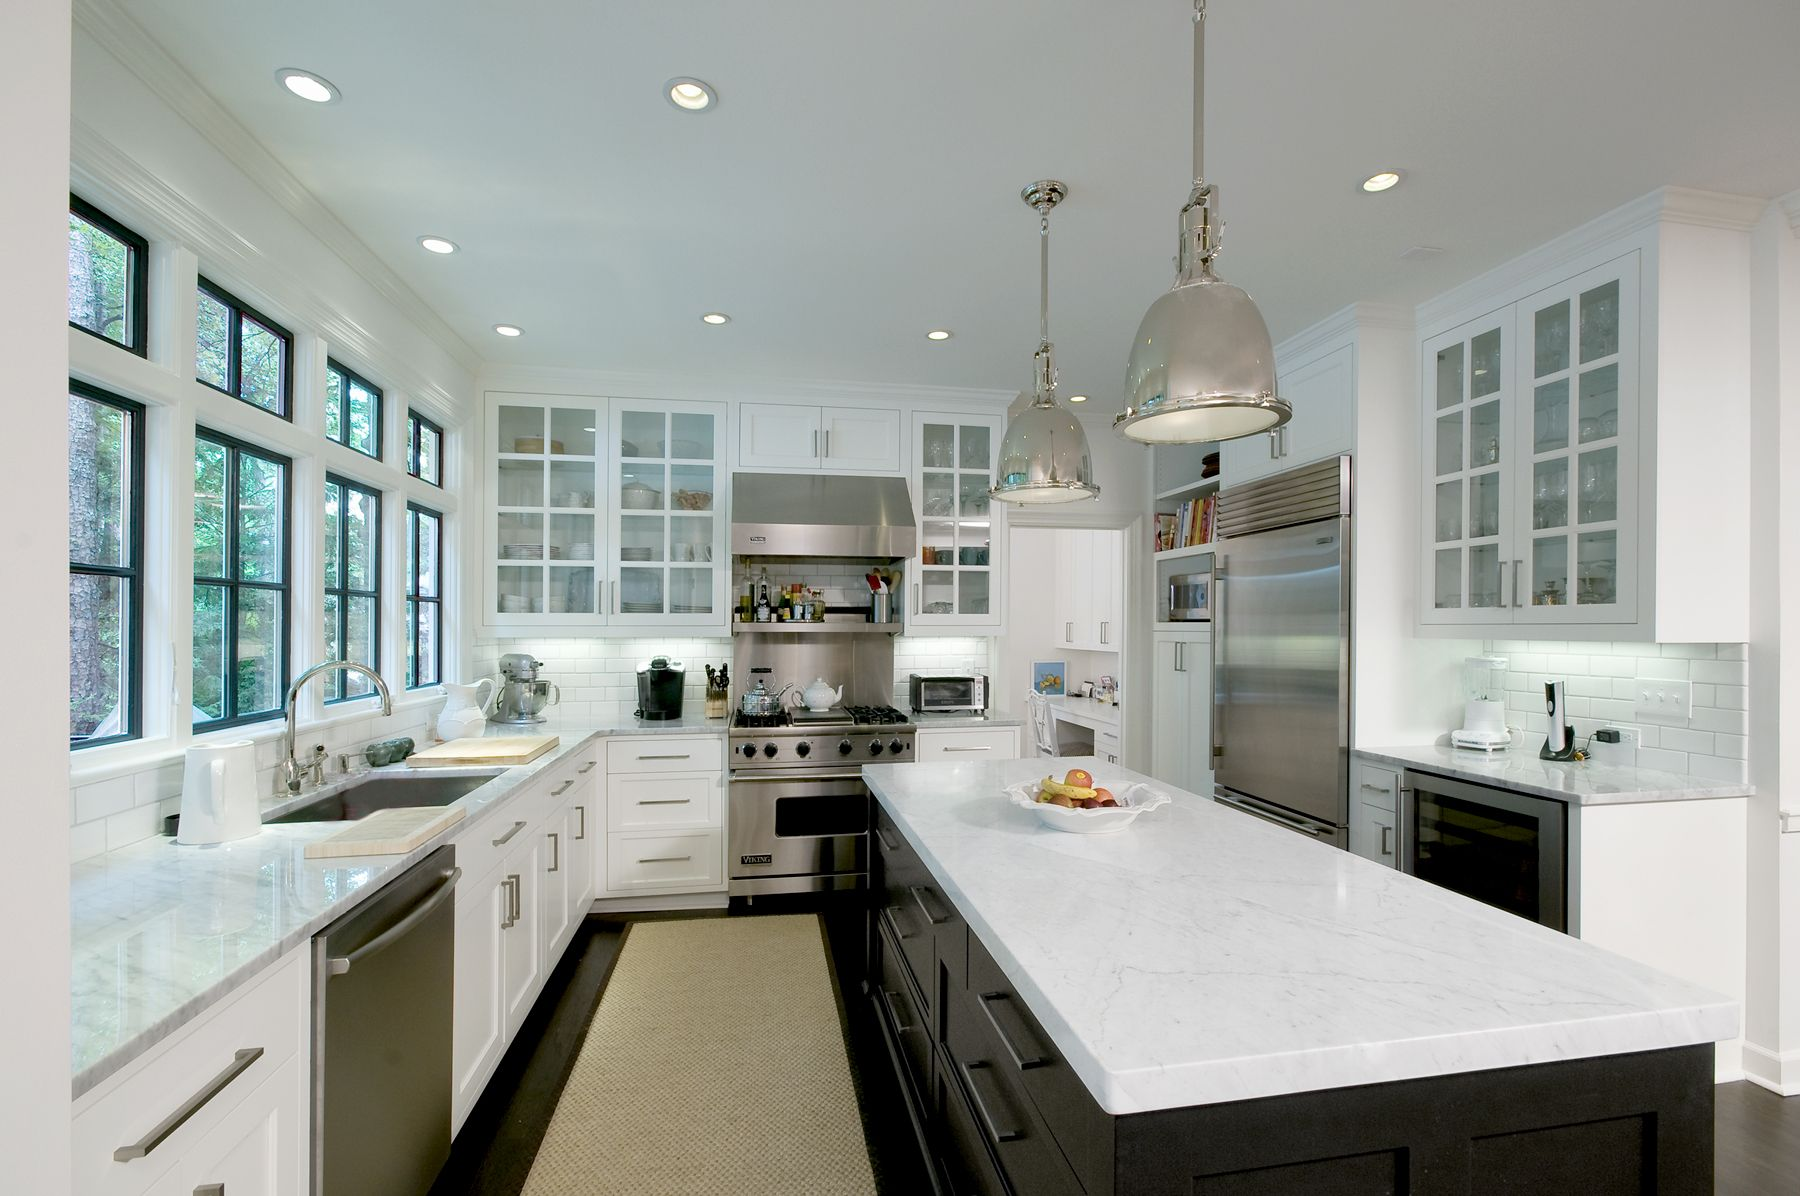 Either Or R Architecture Michael Mcelvey Photograph White Cabinets Black Island And Windo Kitchen Remodel Cost Cheap Kitchen Remodel Kitchen Remodel Layout